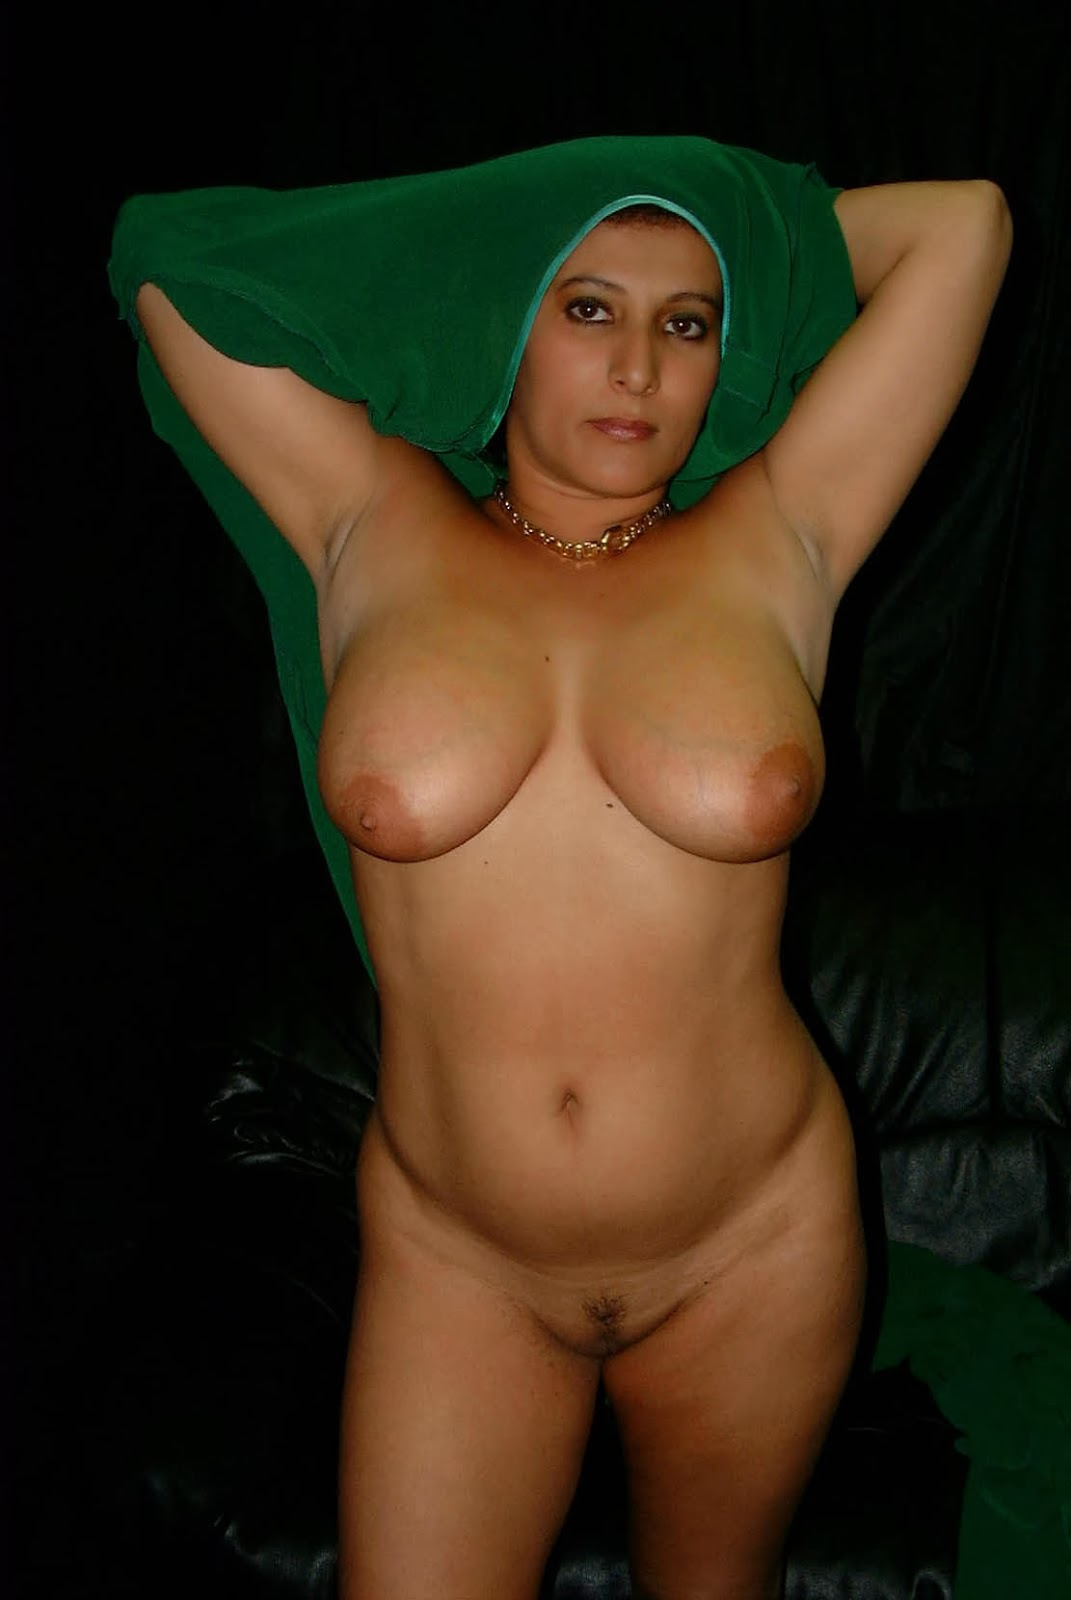 Sorry, big indian mature aunt boobs nude pics